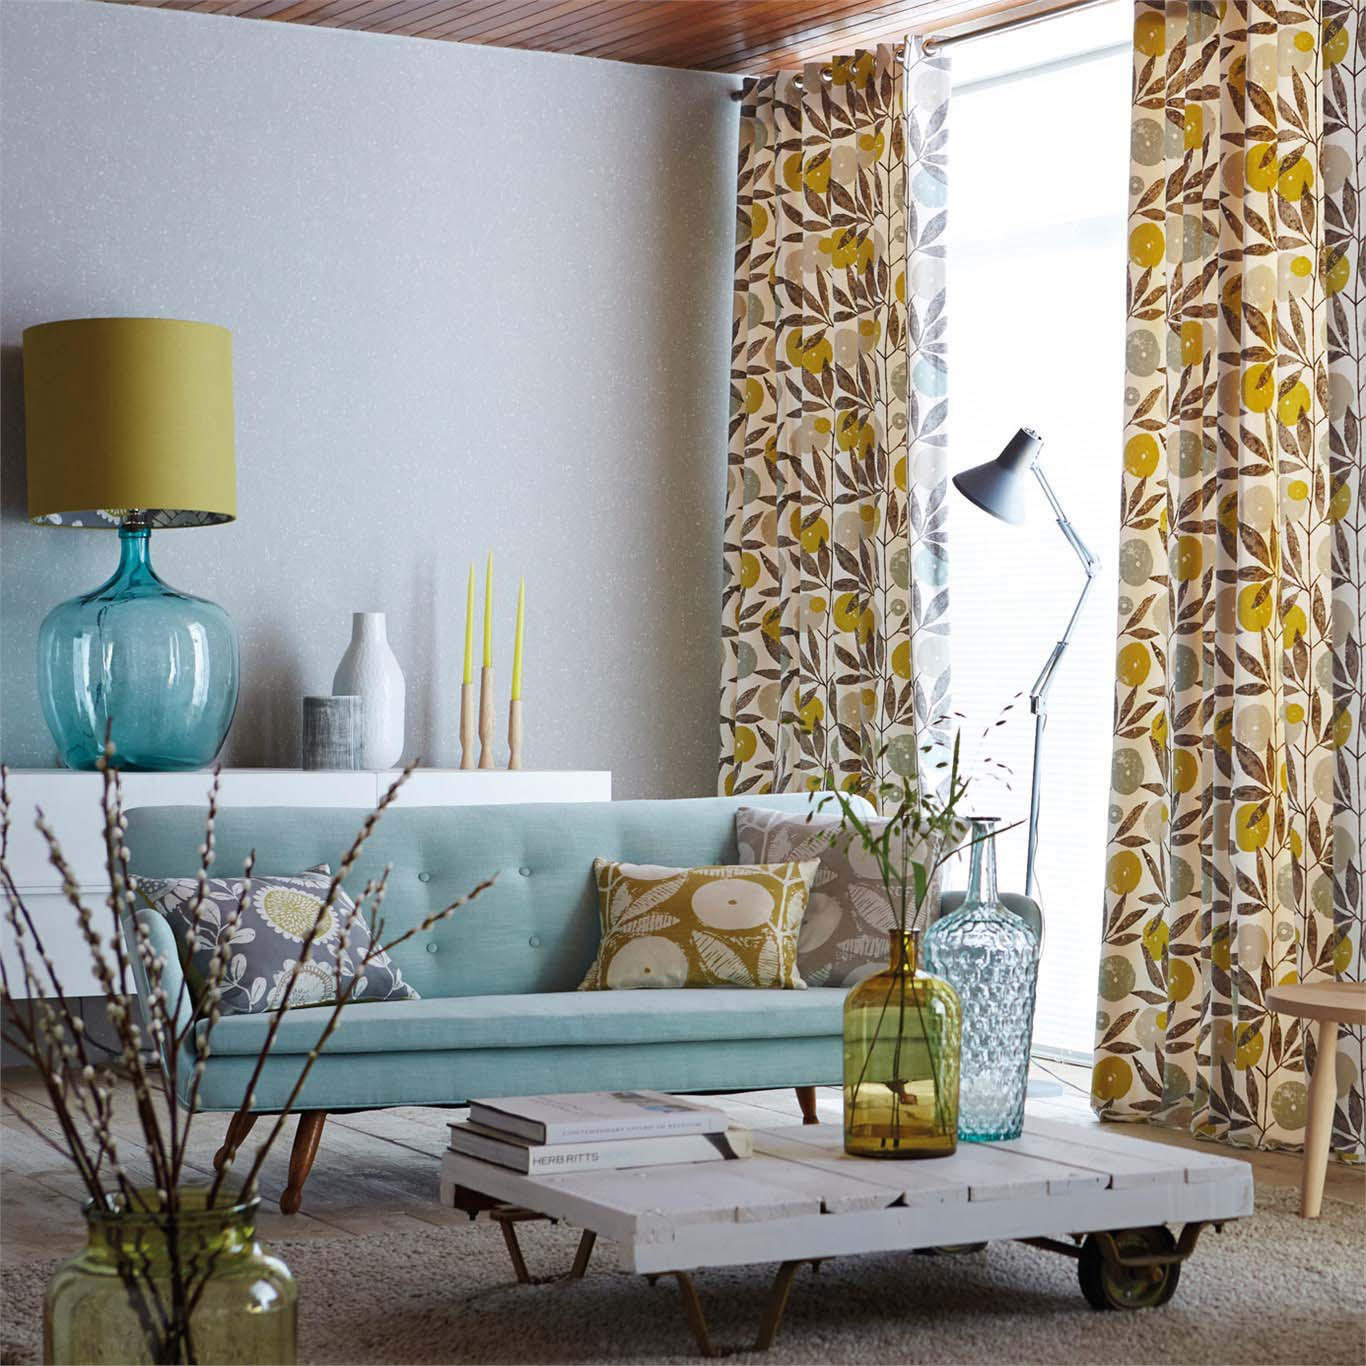 Lounge room furniture and curtains